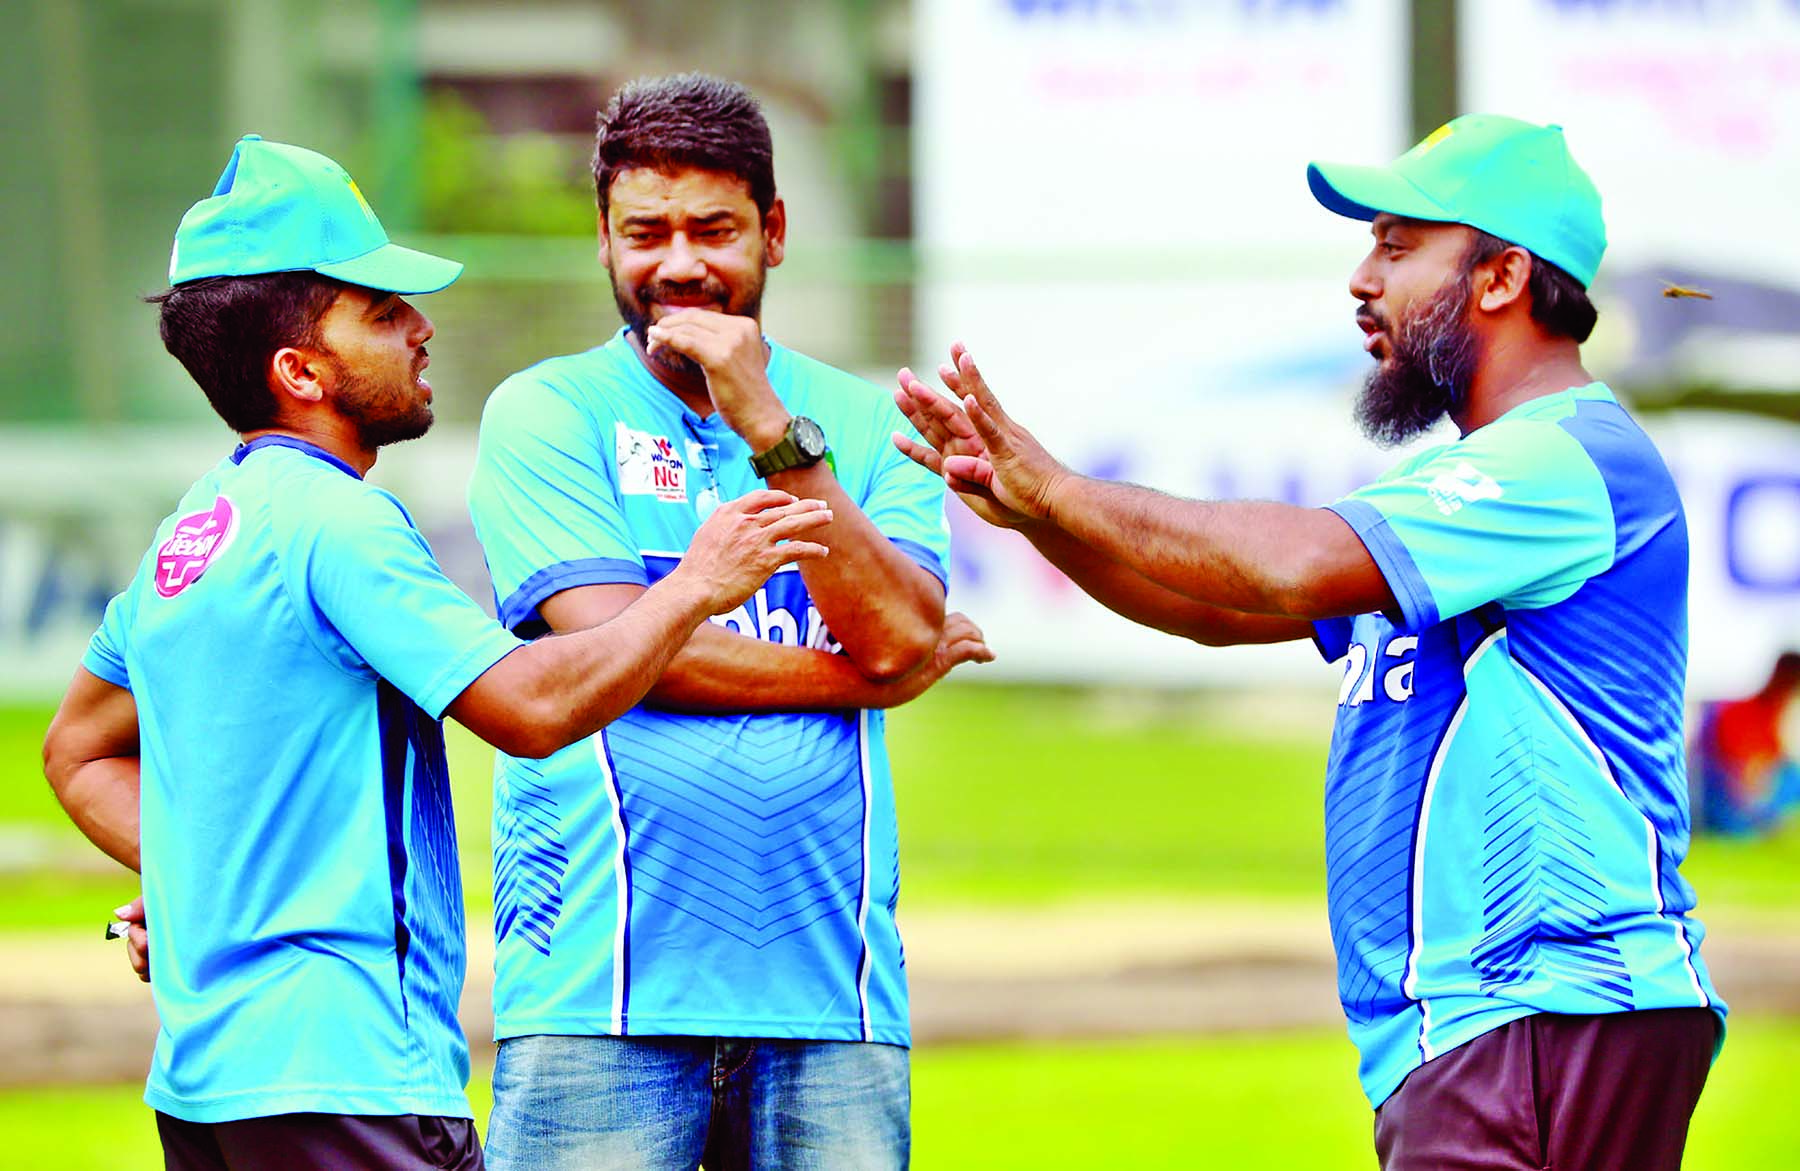 Members of Bangladesh Cricket team during their practice session at the BCB-NCA Ground in the city's Mirpur on Wednesday.